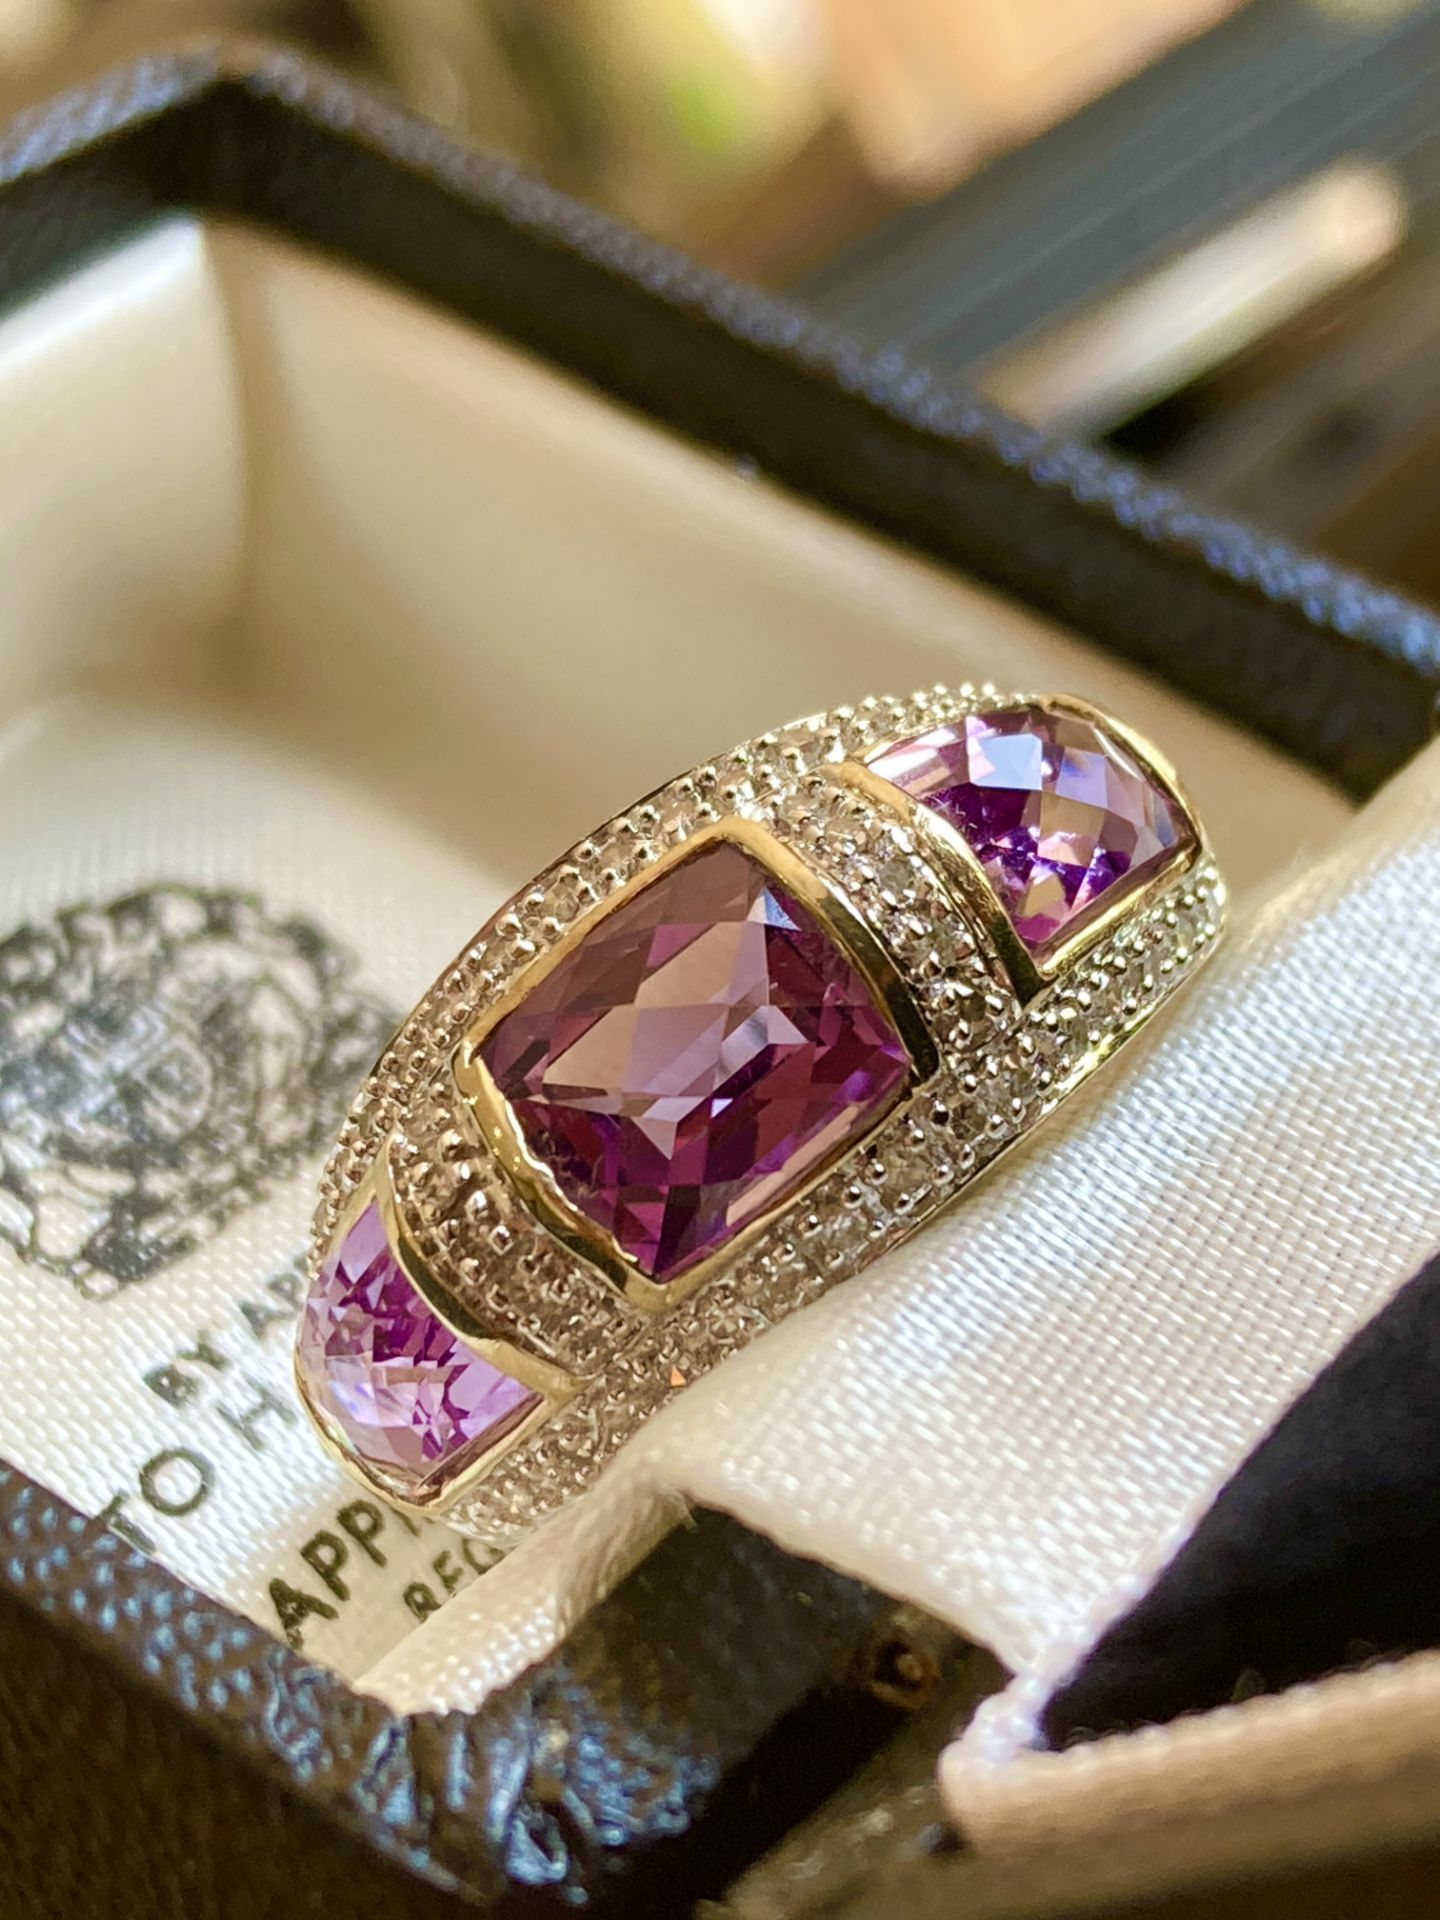 9CT YELLOW GOLD AMETHYST & DIAMOND RING - SIZE: S / WEIGHT: 3.5G - Image 9 of 9